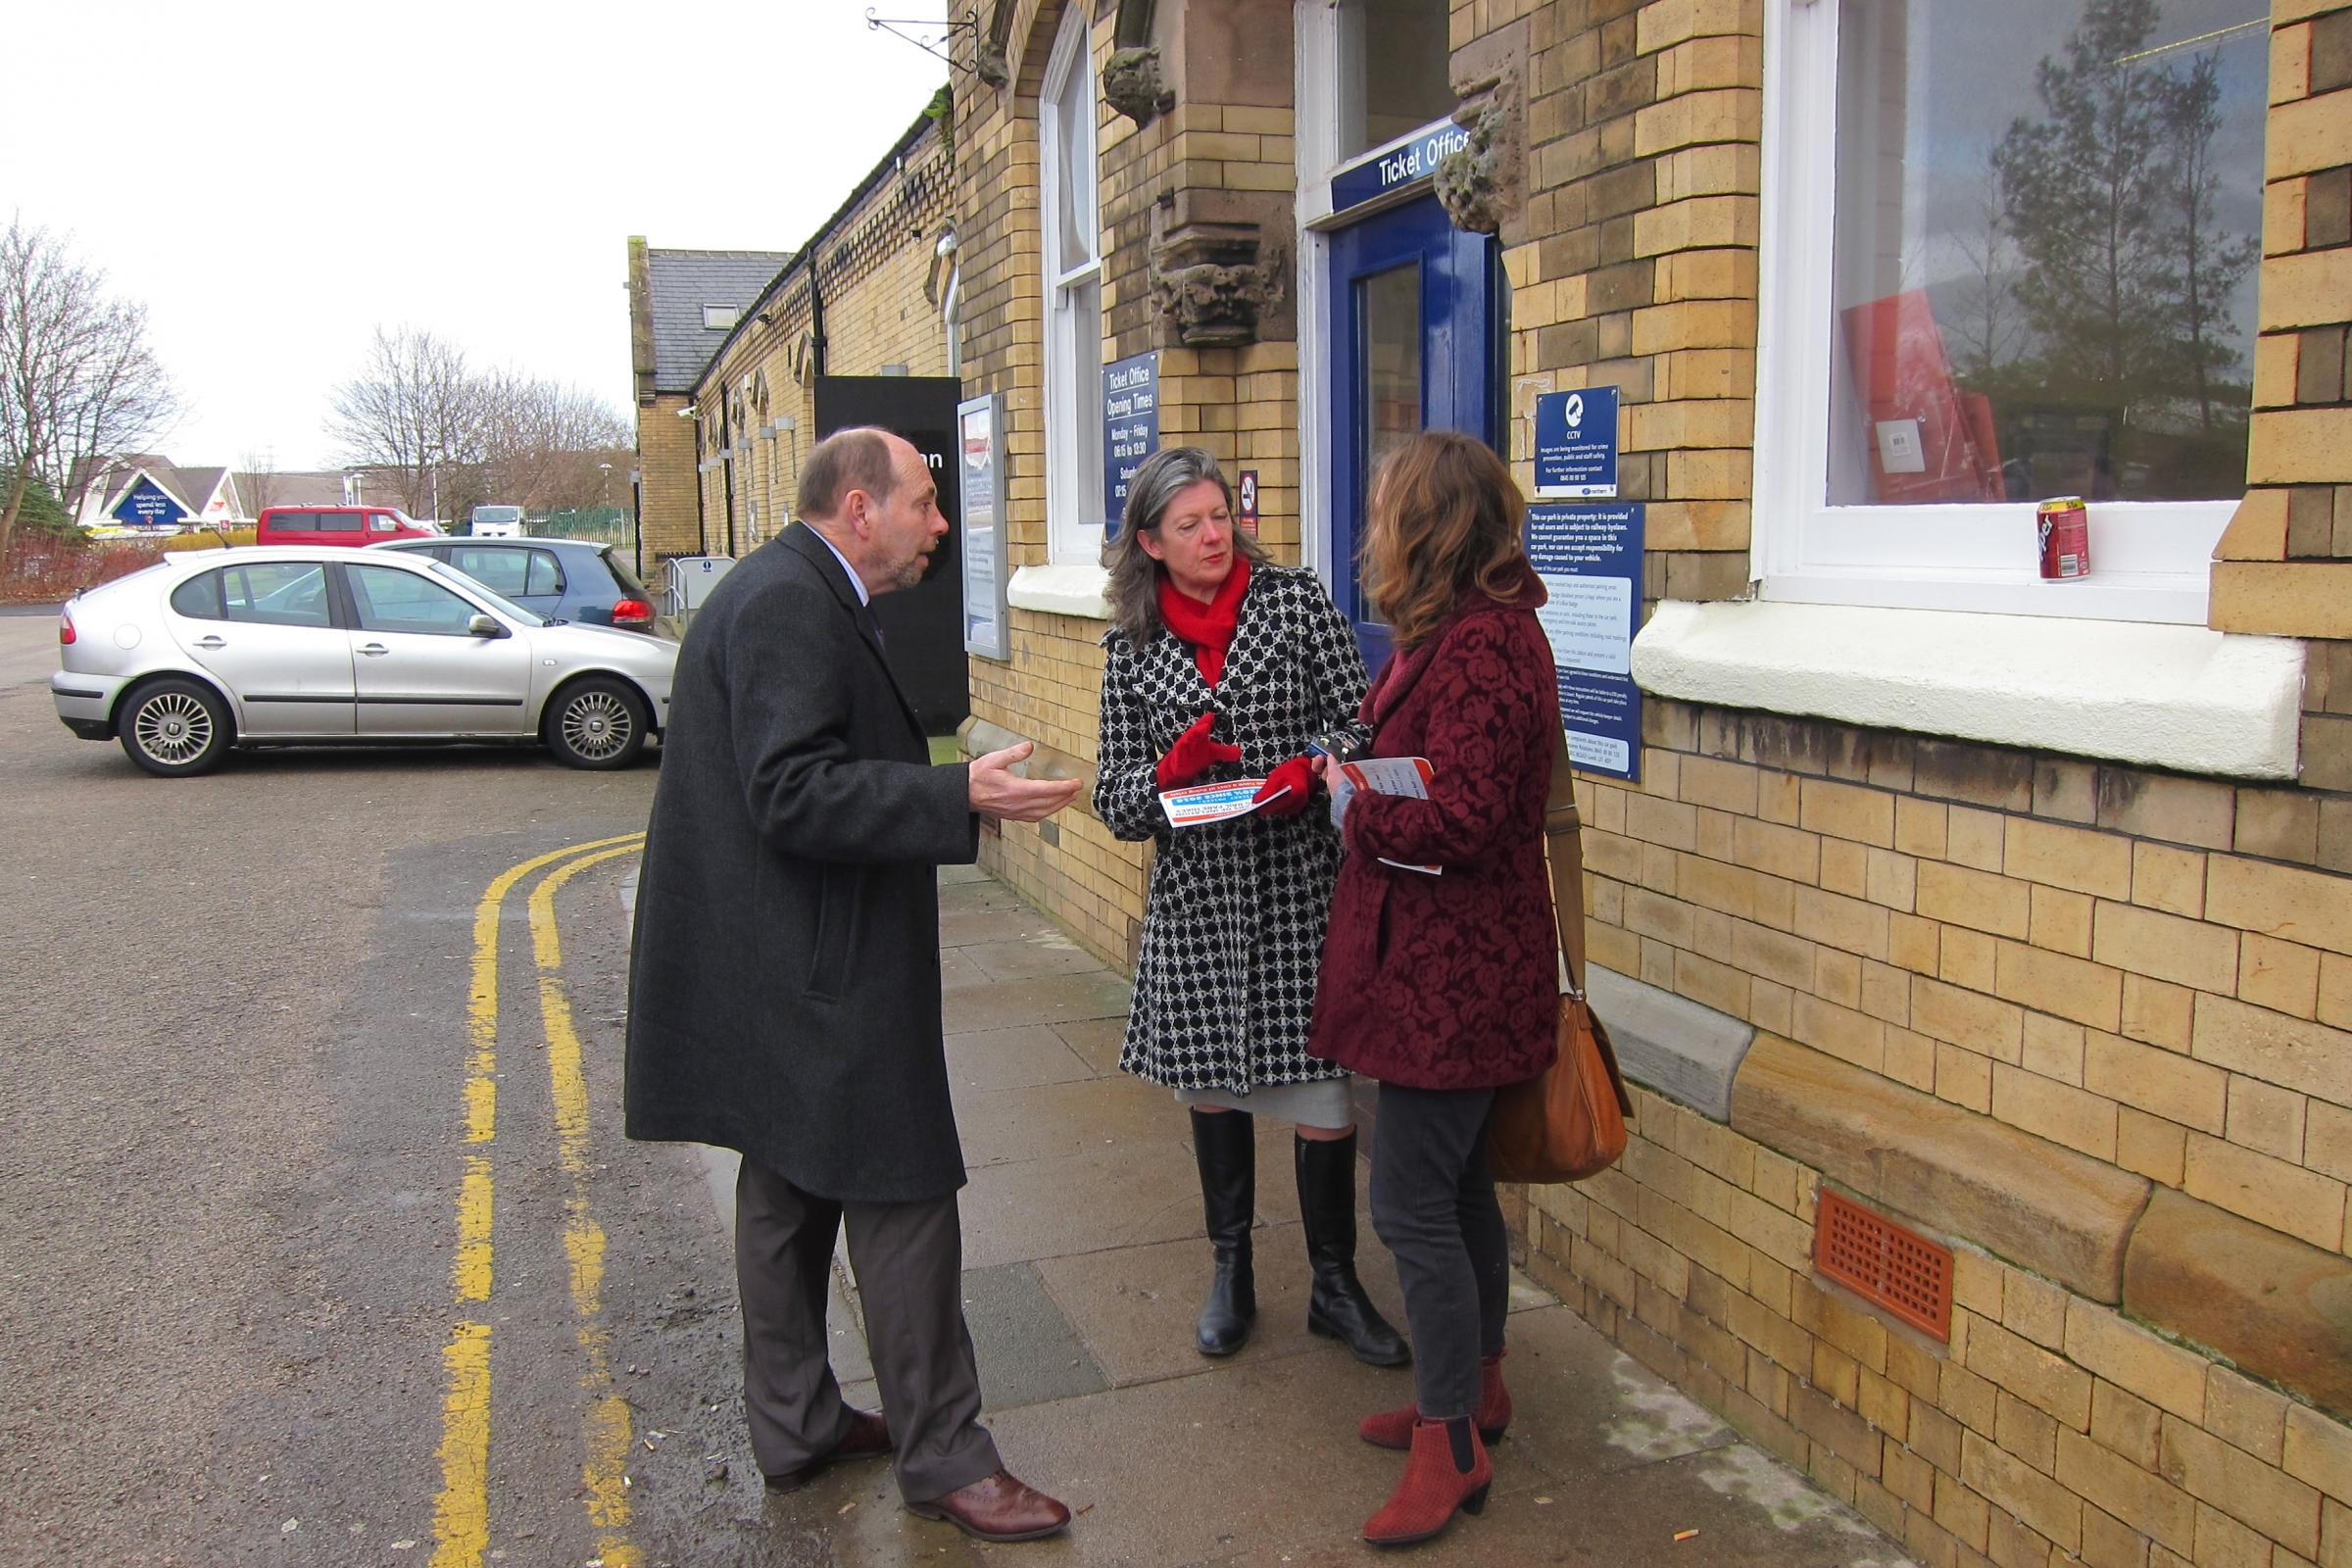 Julia Tickridge talks to Weaver Vale constituents